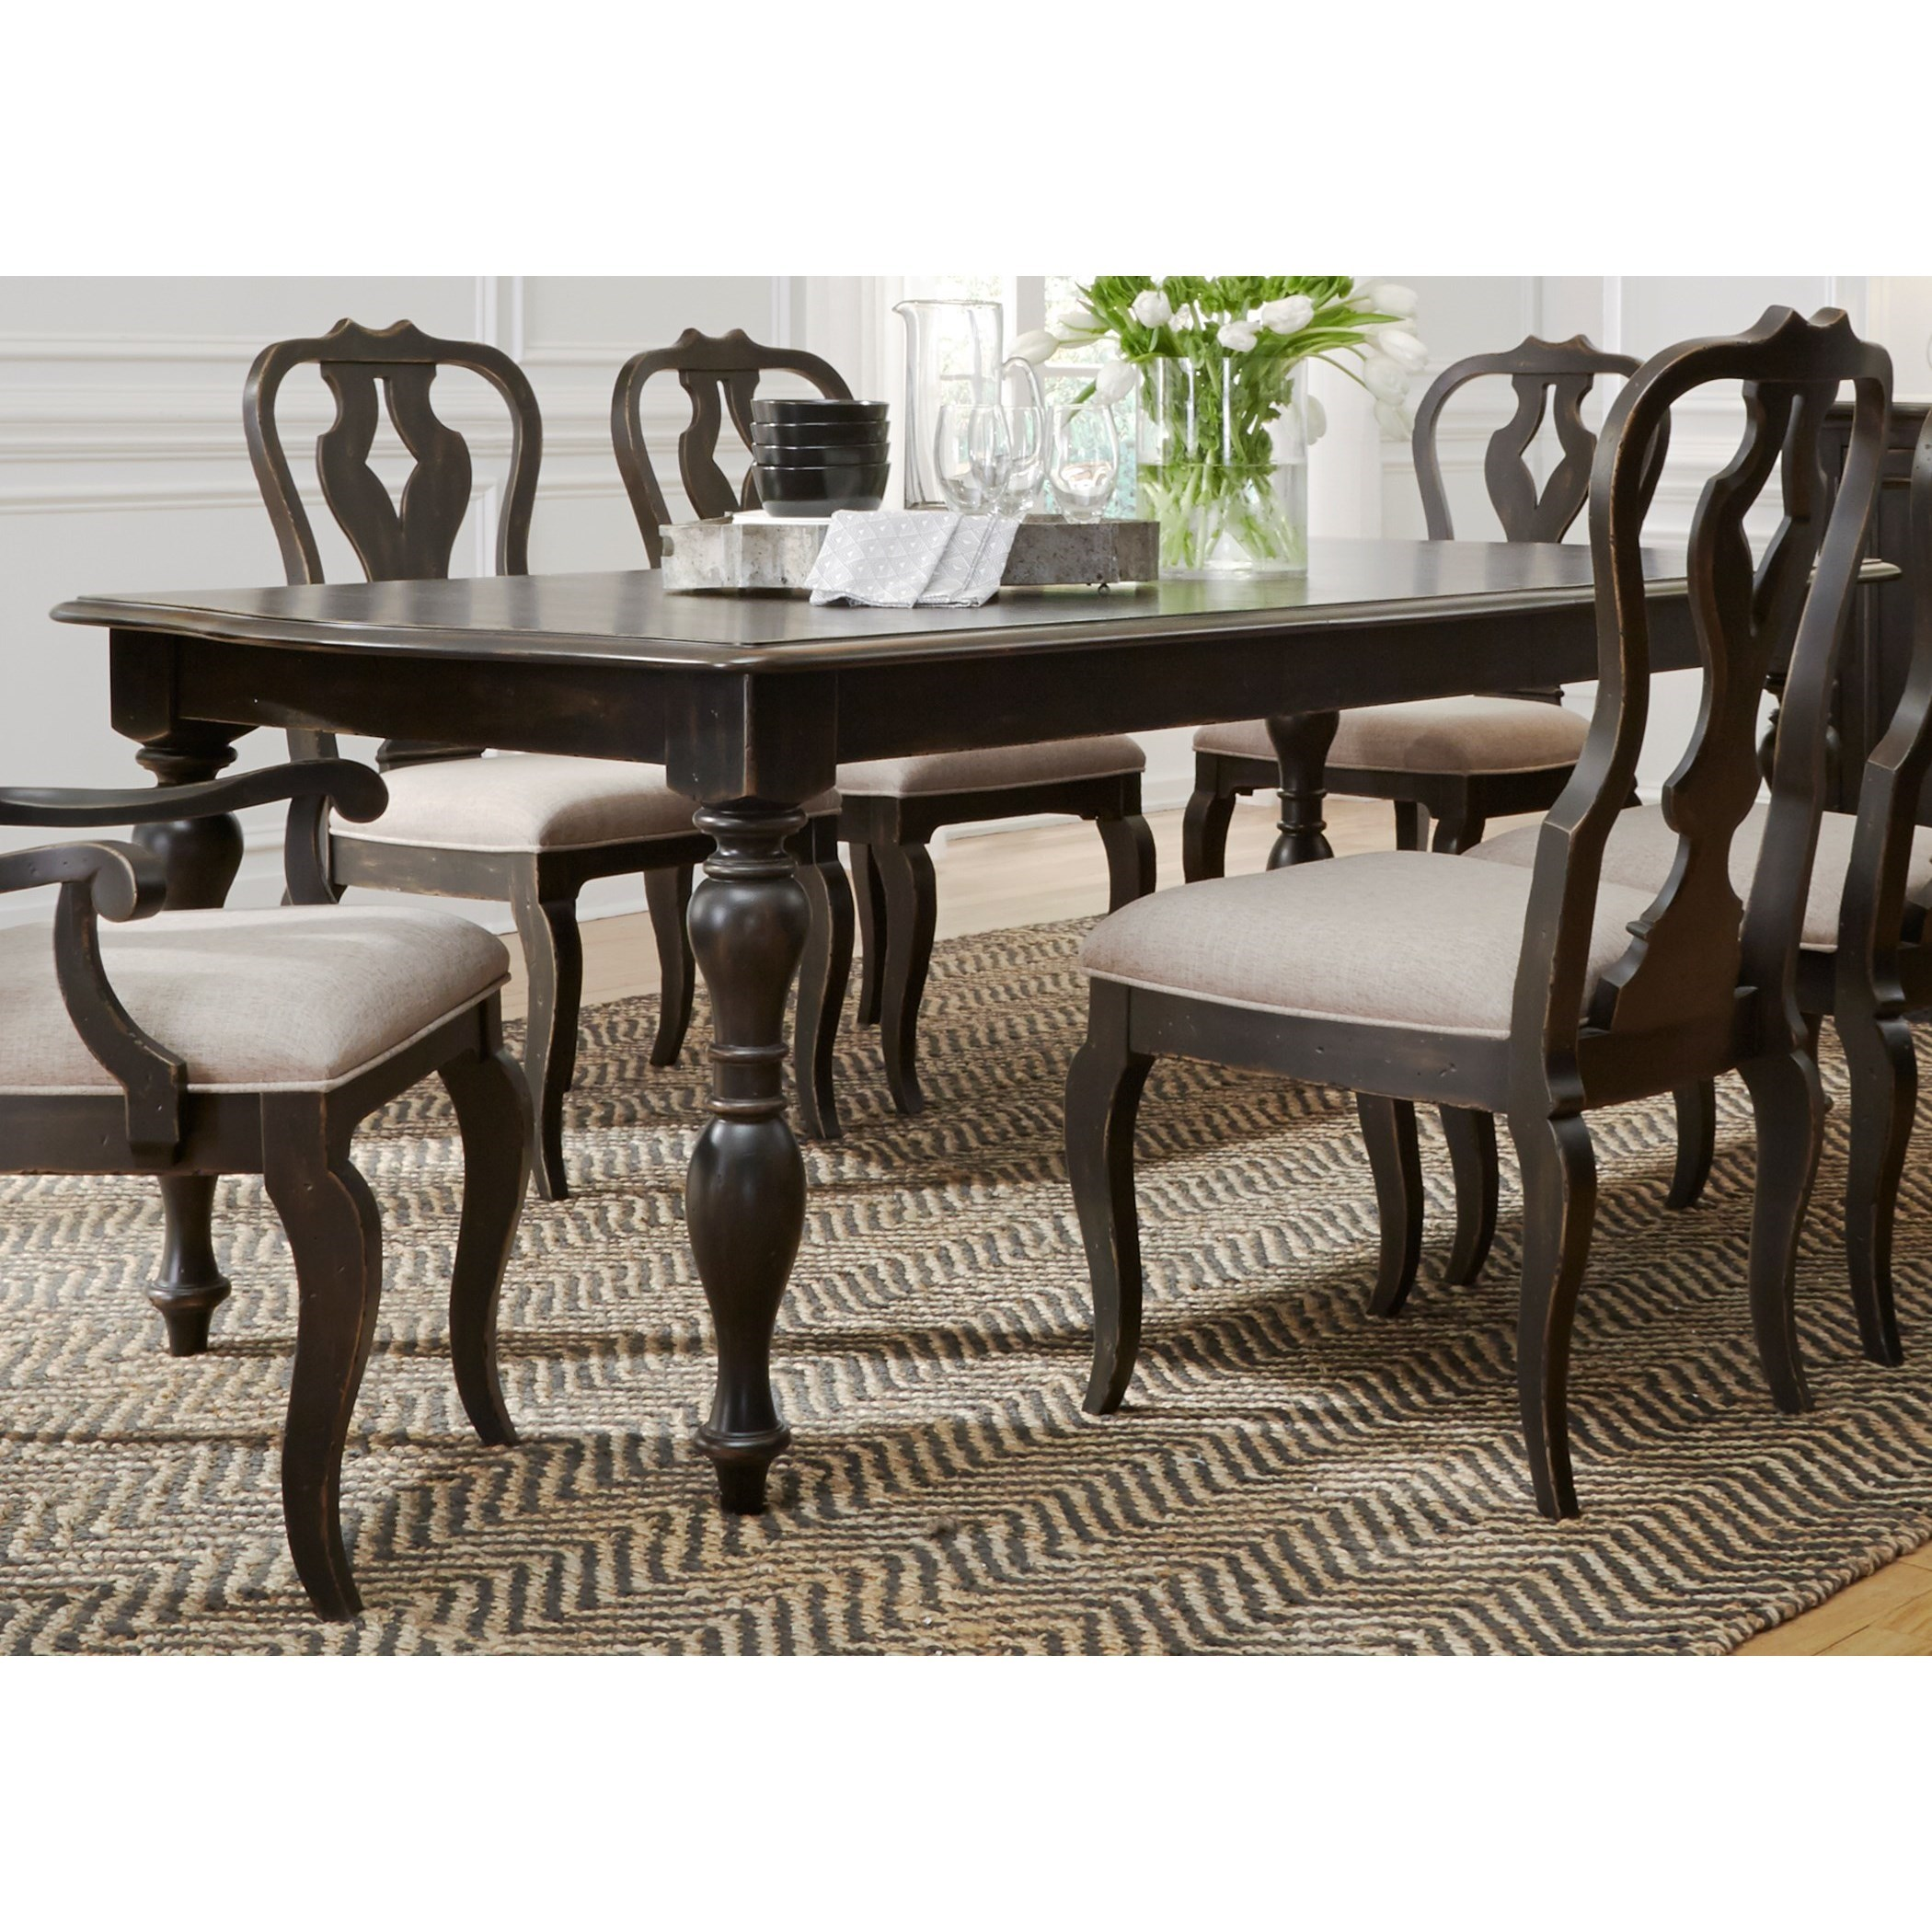 Chesapeake Rectangular Dining Table by Liberty Furniture at Steger's Furniture